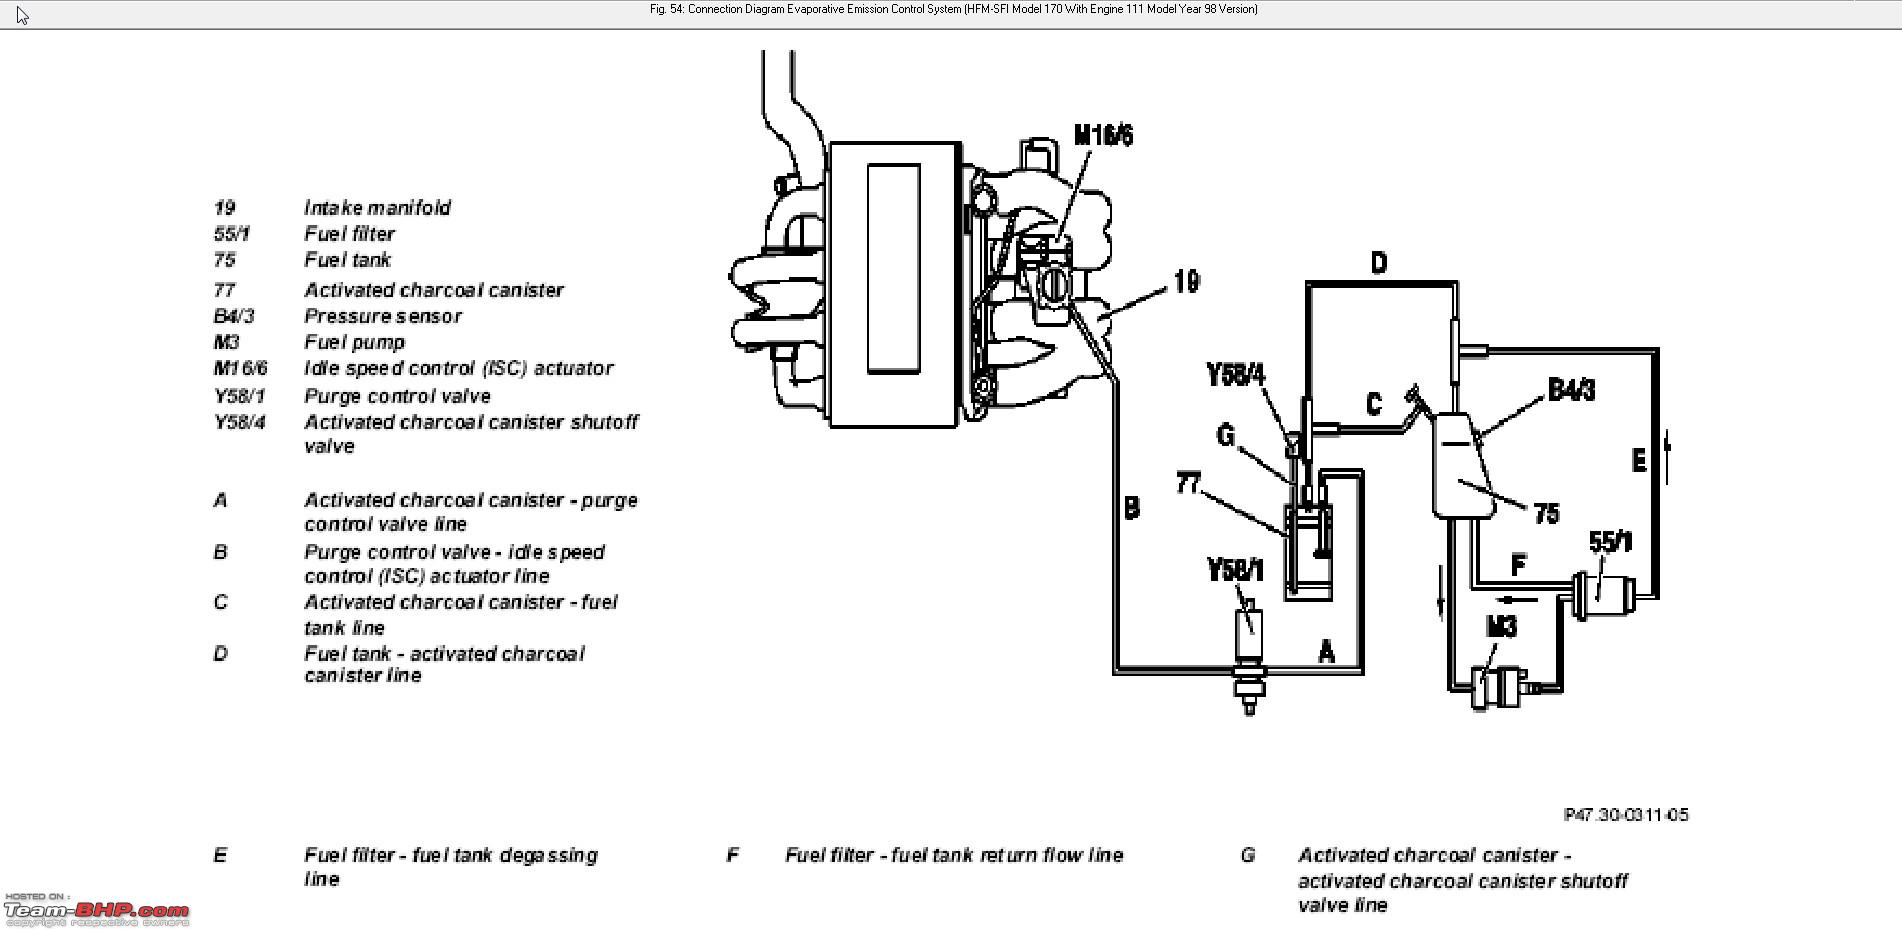 1253365d1403573633 mercedes w124 e class support group screenhunter_105 jun. 23 20.47?resize\\\\\\\\=665%2C326 wonderful dayna peavey bass wiring diagrams images wiring  at readyjetset.co